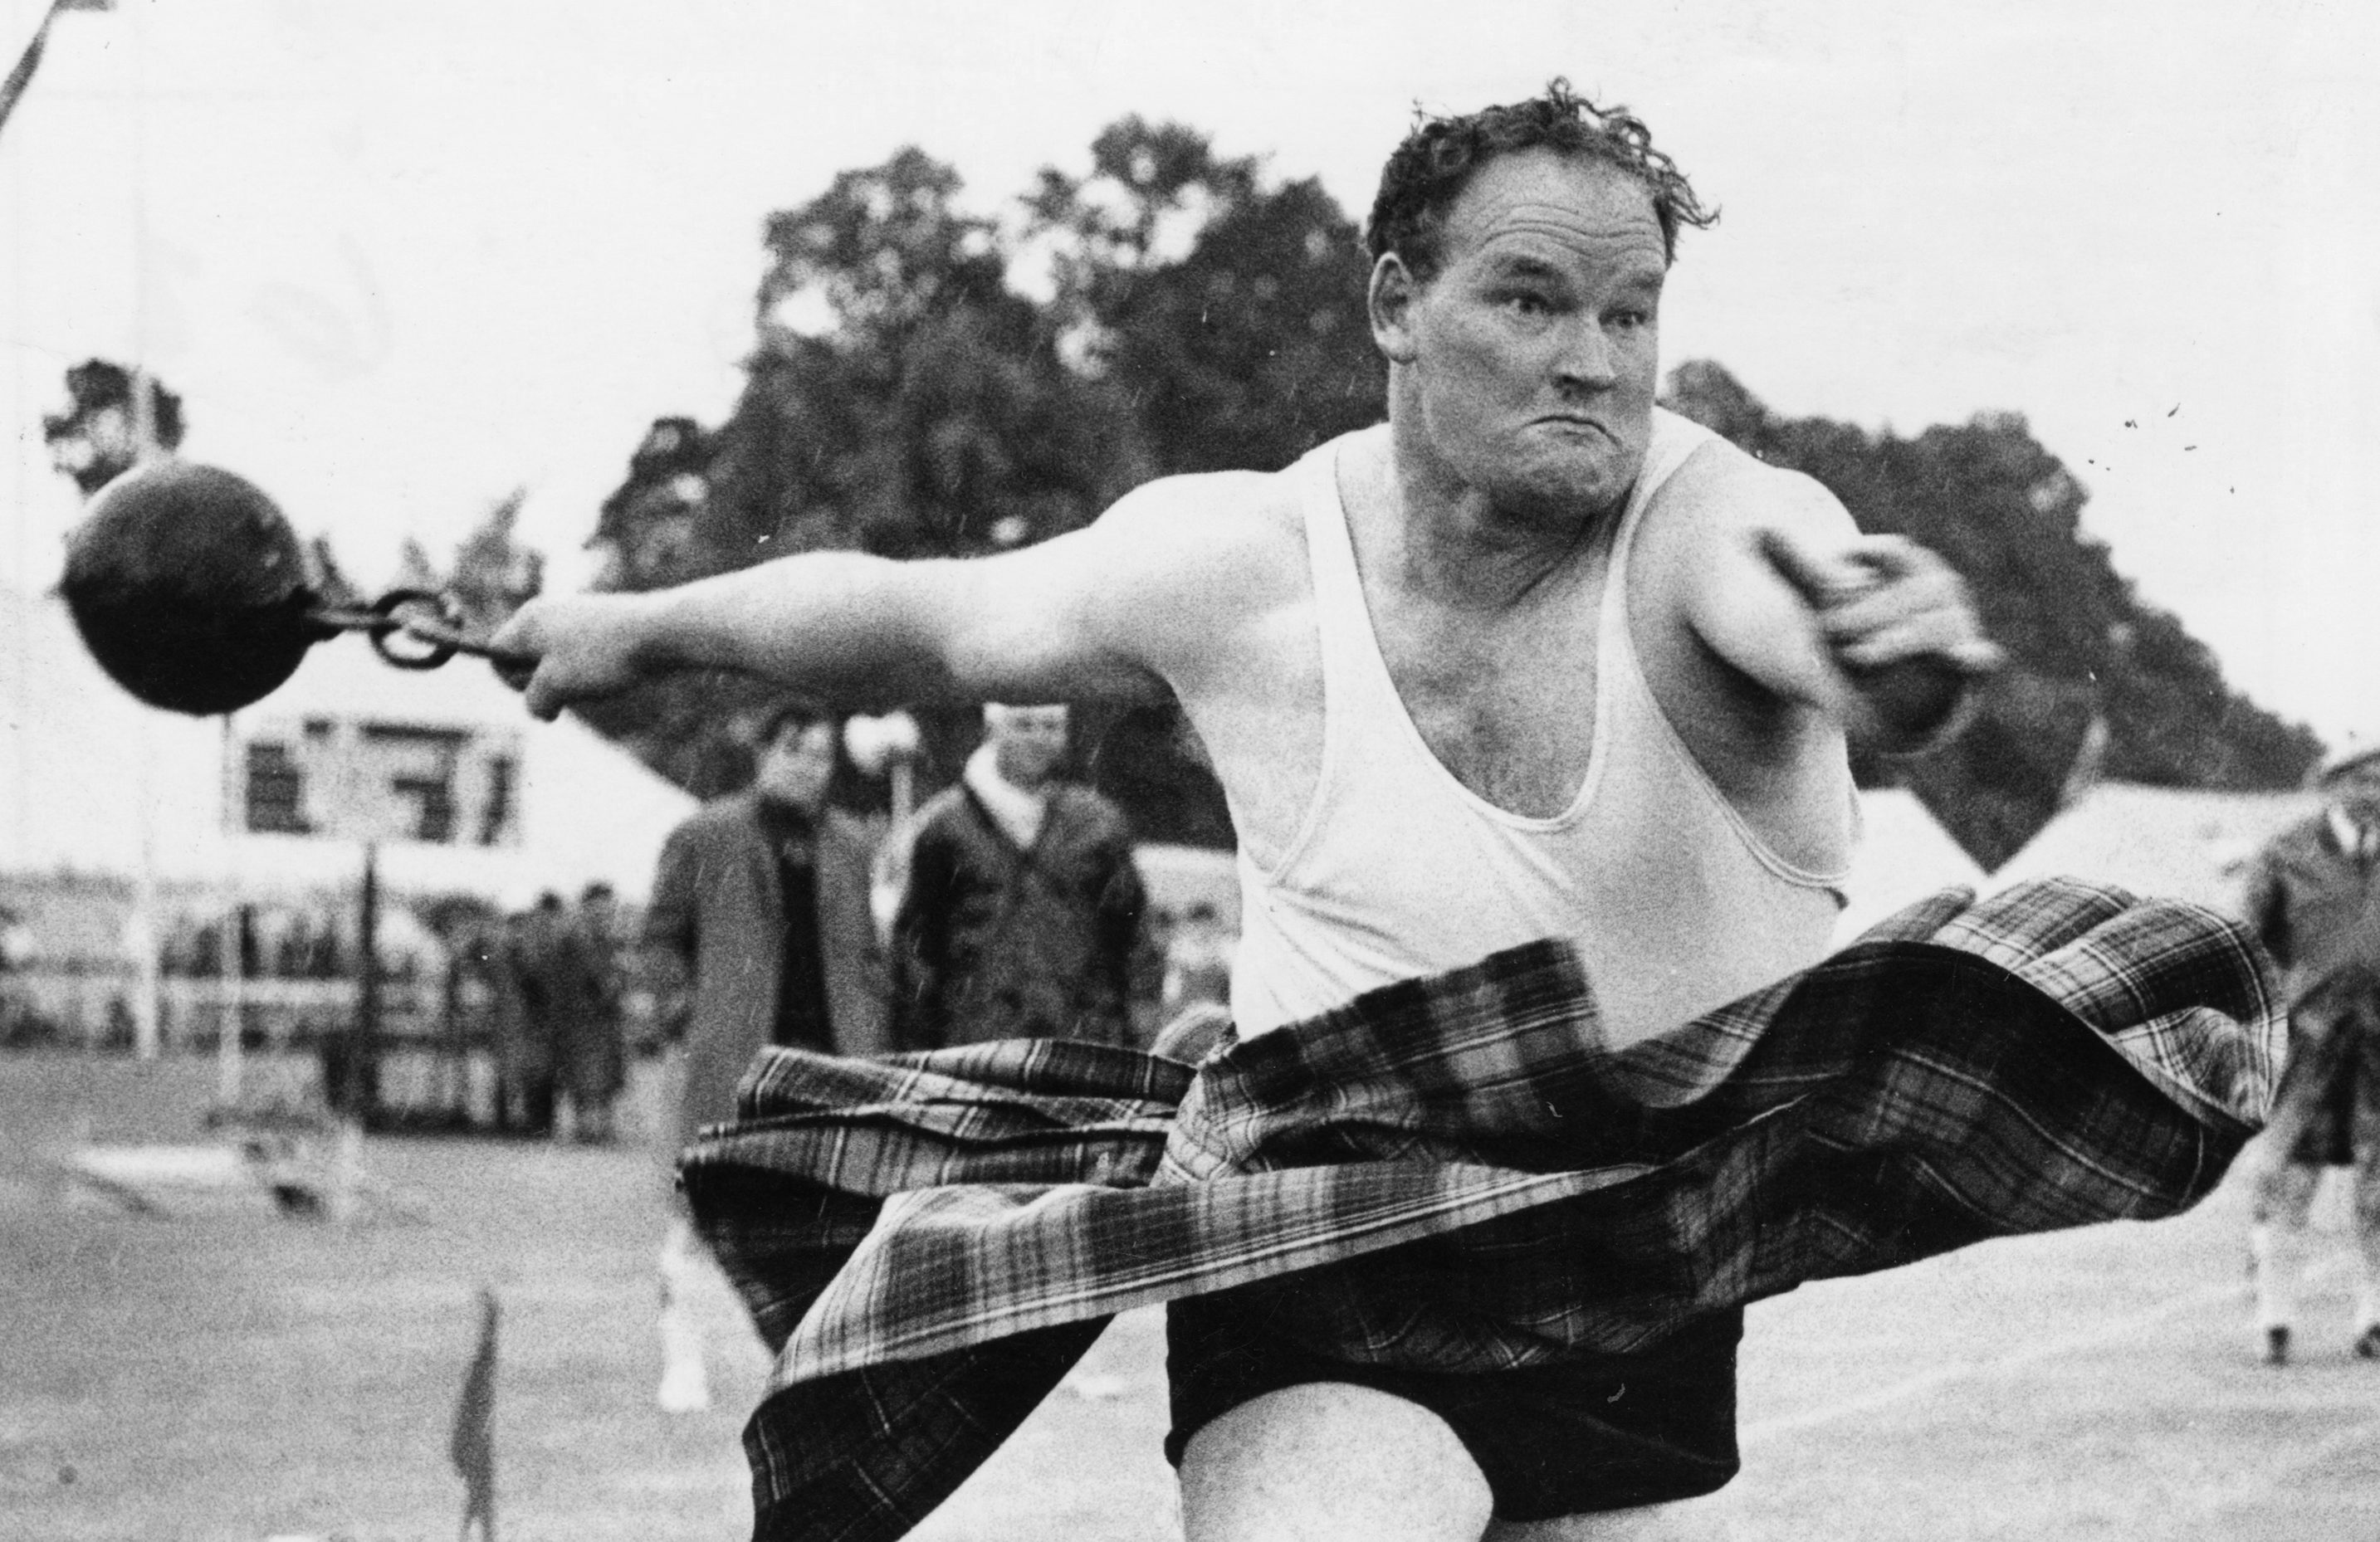 Braemar Gathering 1970-09-02 Bill Anderson (C)AJL Used P&J 03.09.1970 Bill Anderson throws the 56lb. weight by ring to win the event. The picture clearly illustrates the determination and power of Bill's effort.